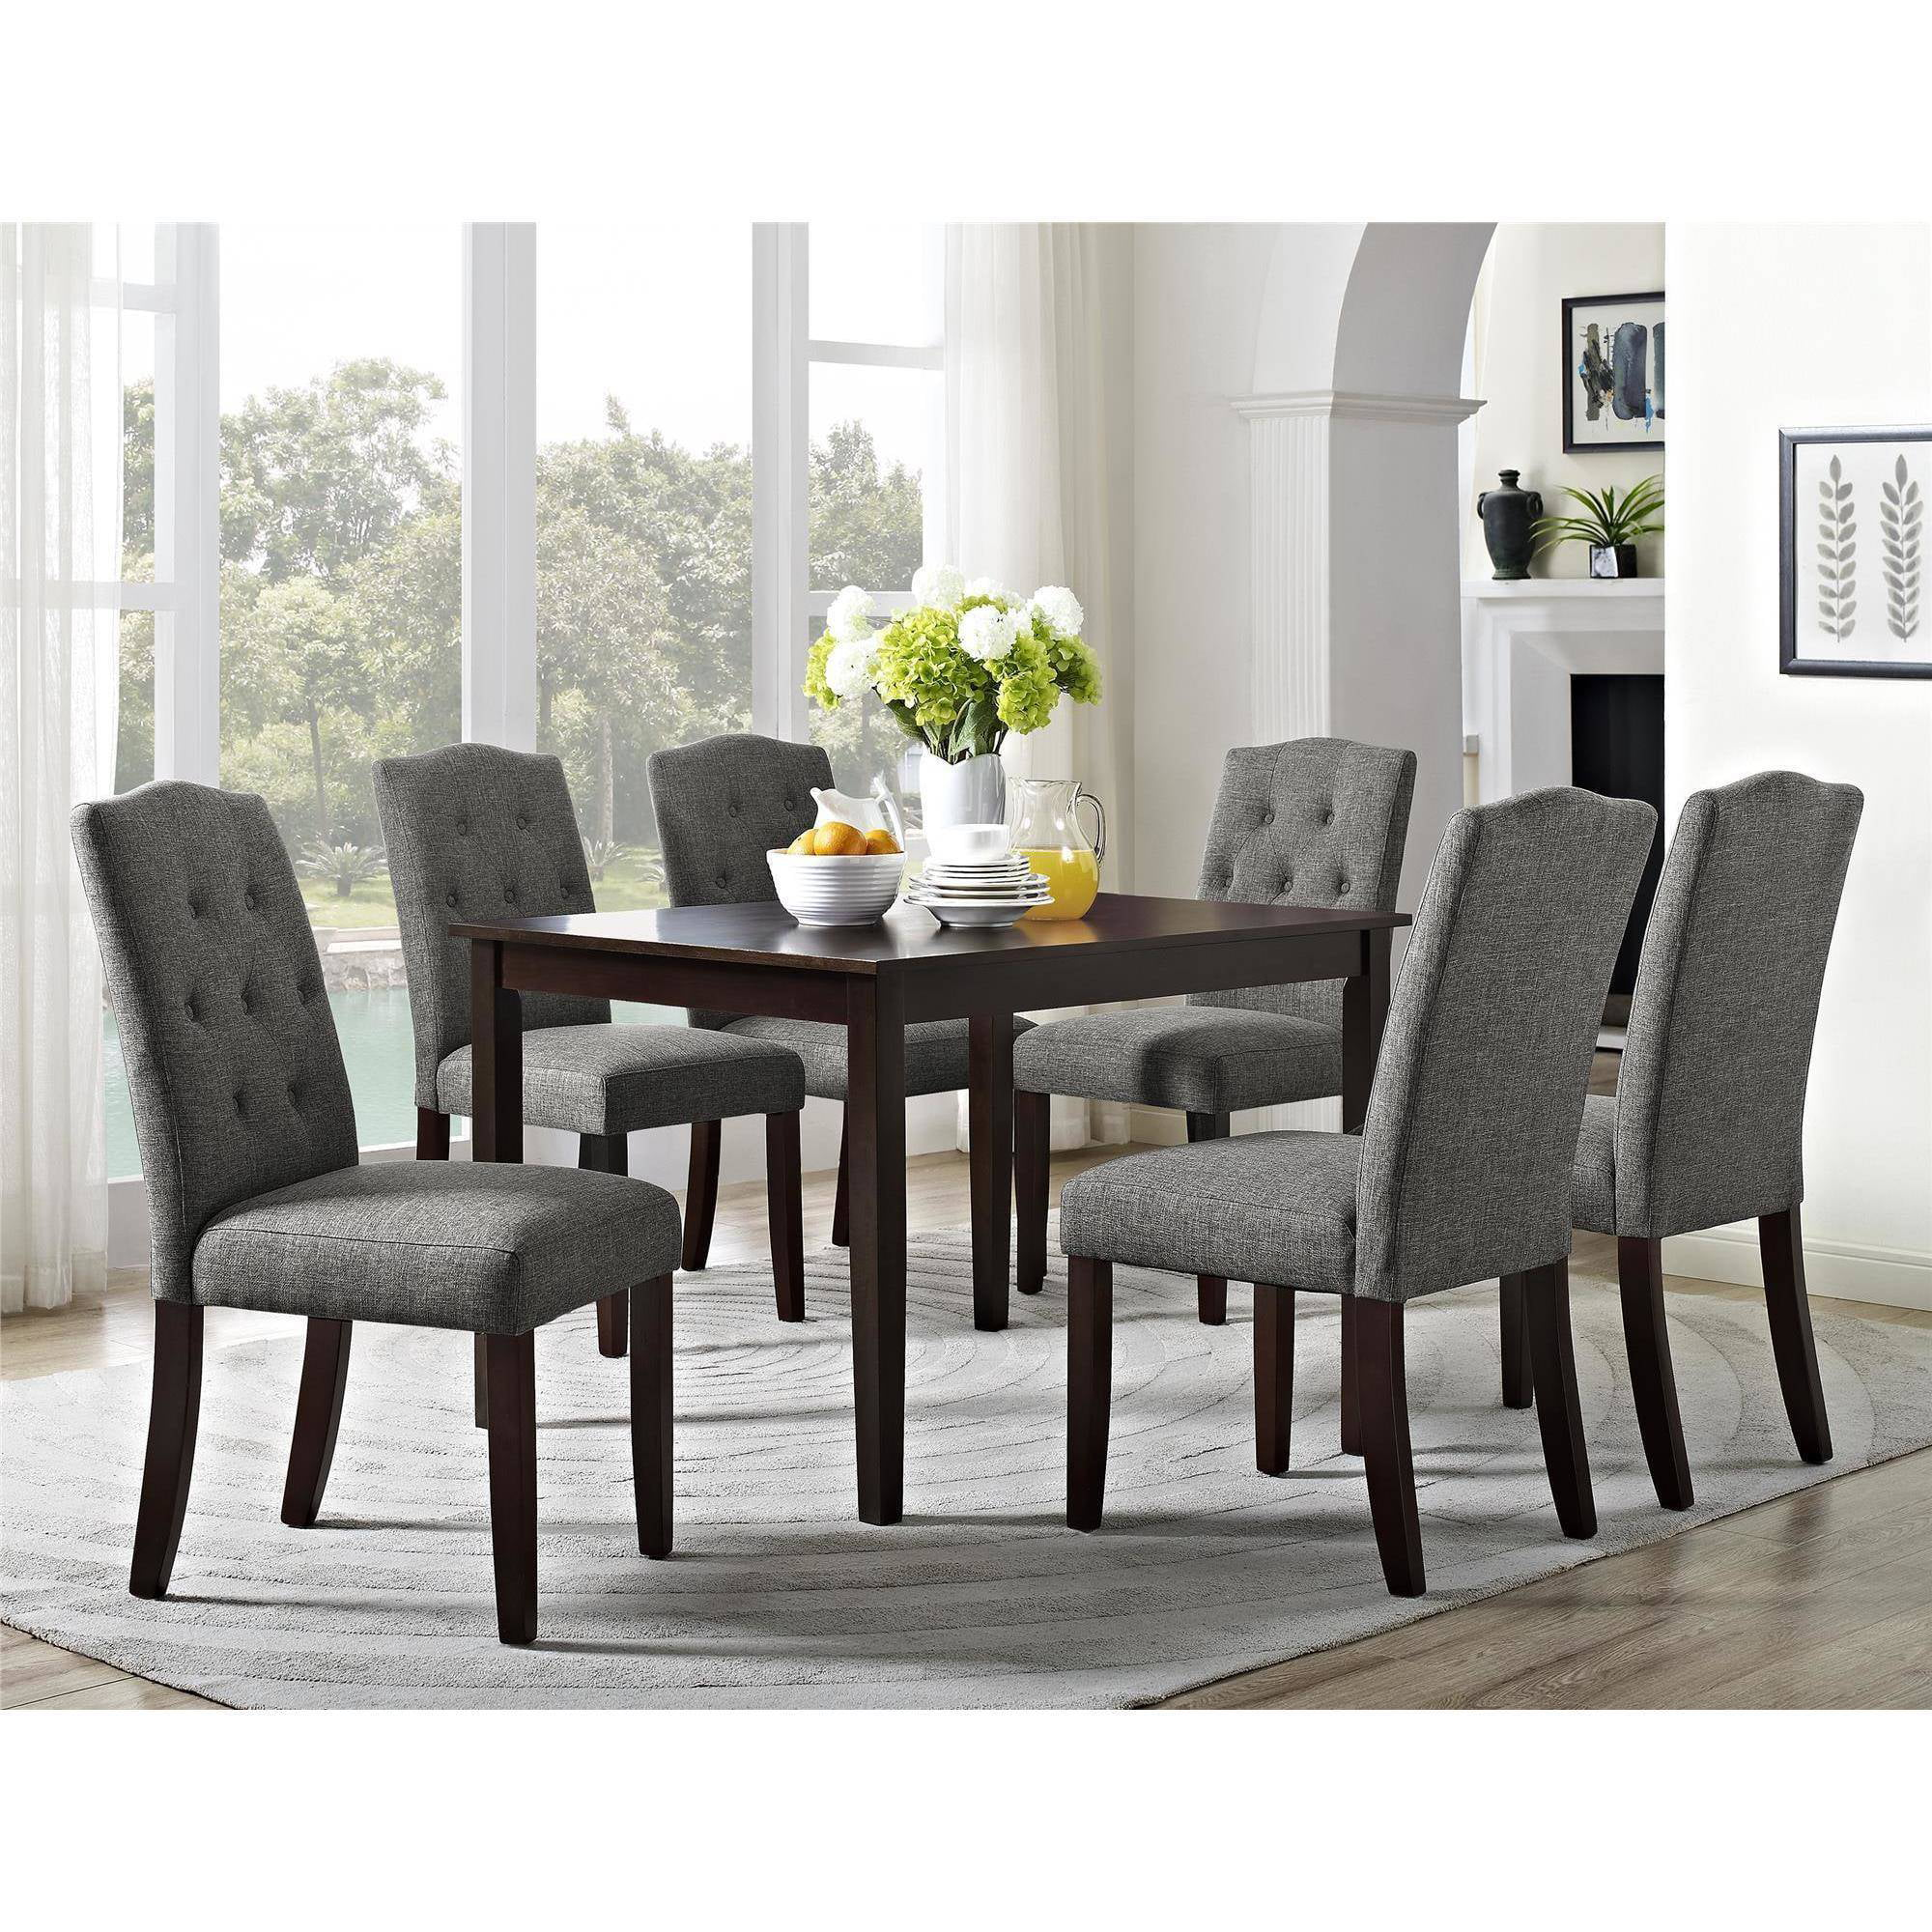 Better Homes And Gardens 7 Piece Dining Set With Upholstered Chairs, Grey    Walmart.com